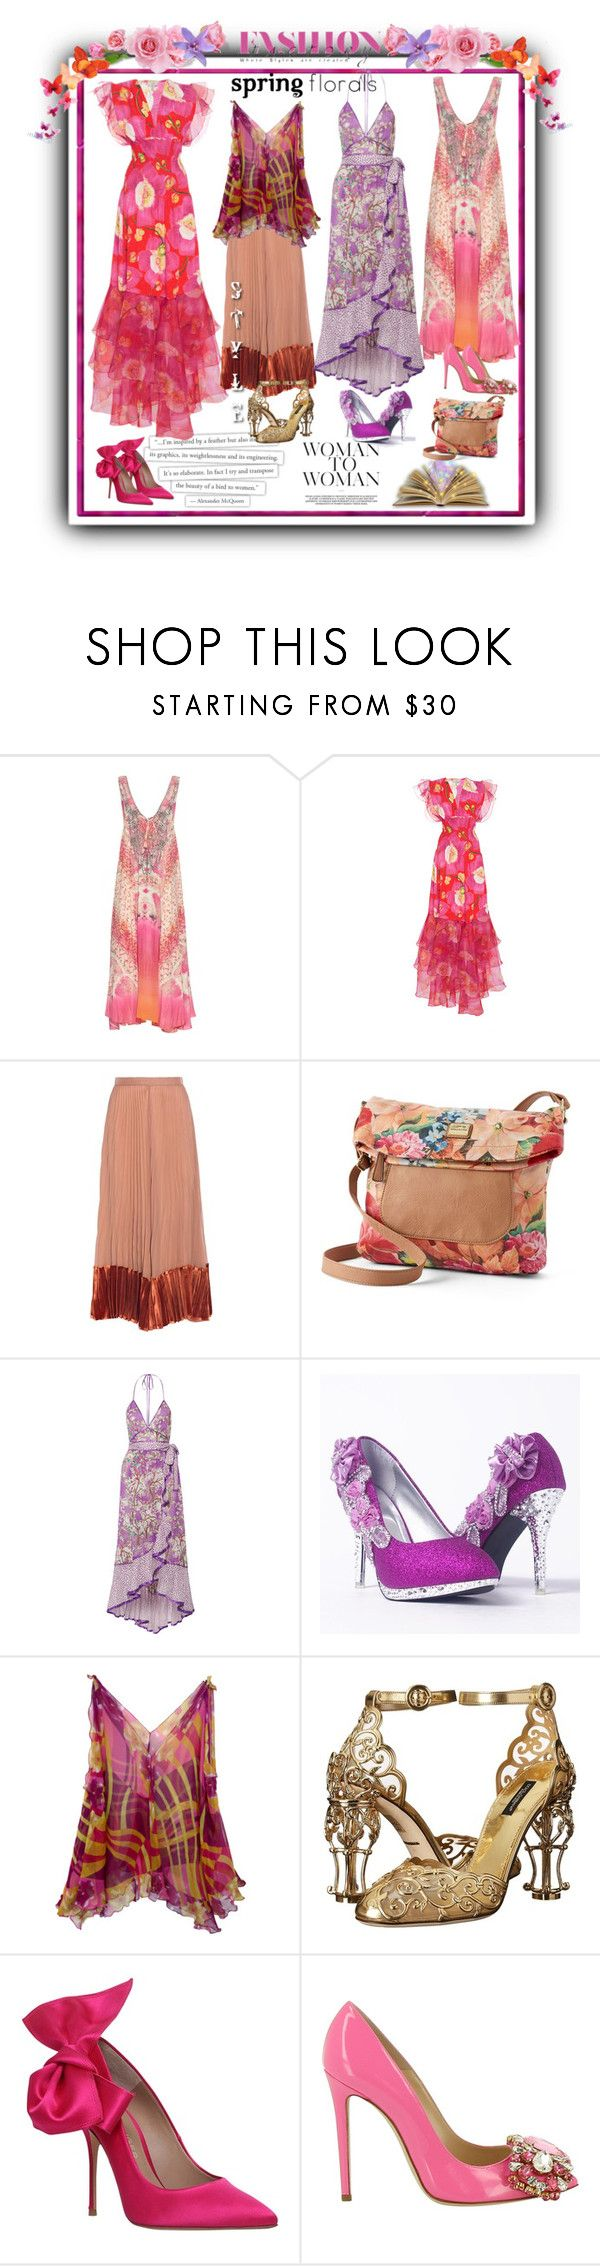 """""""Spring Floral Fashion"""" by lawvel ❤ liked on Polyvore featuring Alexander McQueen, Camilla, Isolda, Valentino, Stella & Max, Marc Jacobs, Dolce&Gabbana, Kurt Geiger and GEDEBE"""